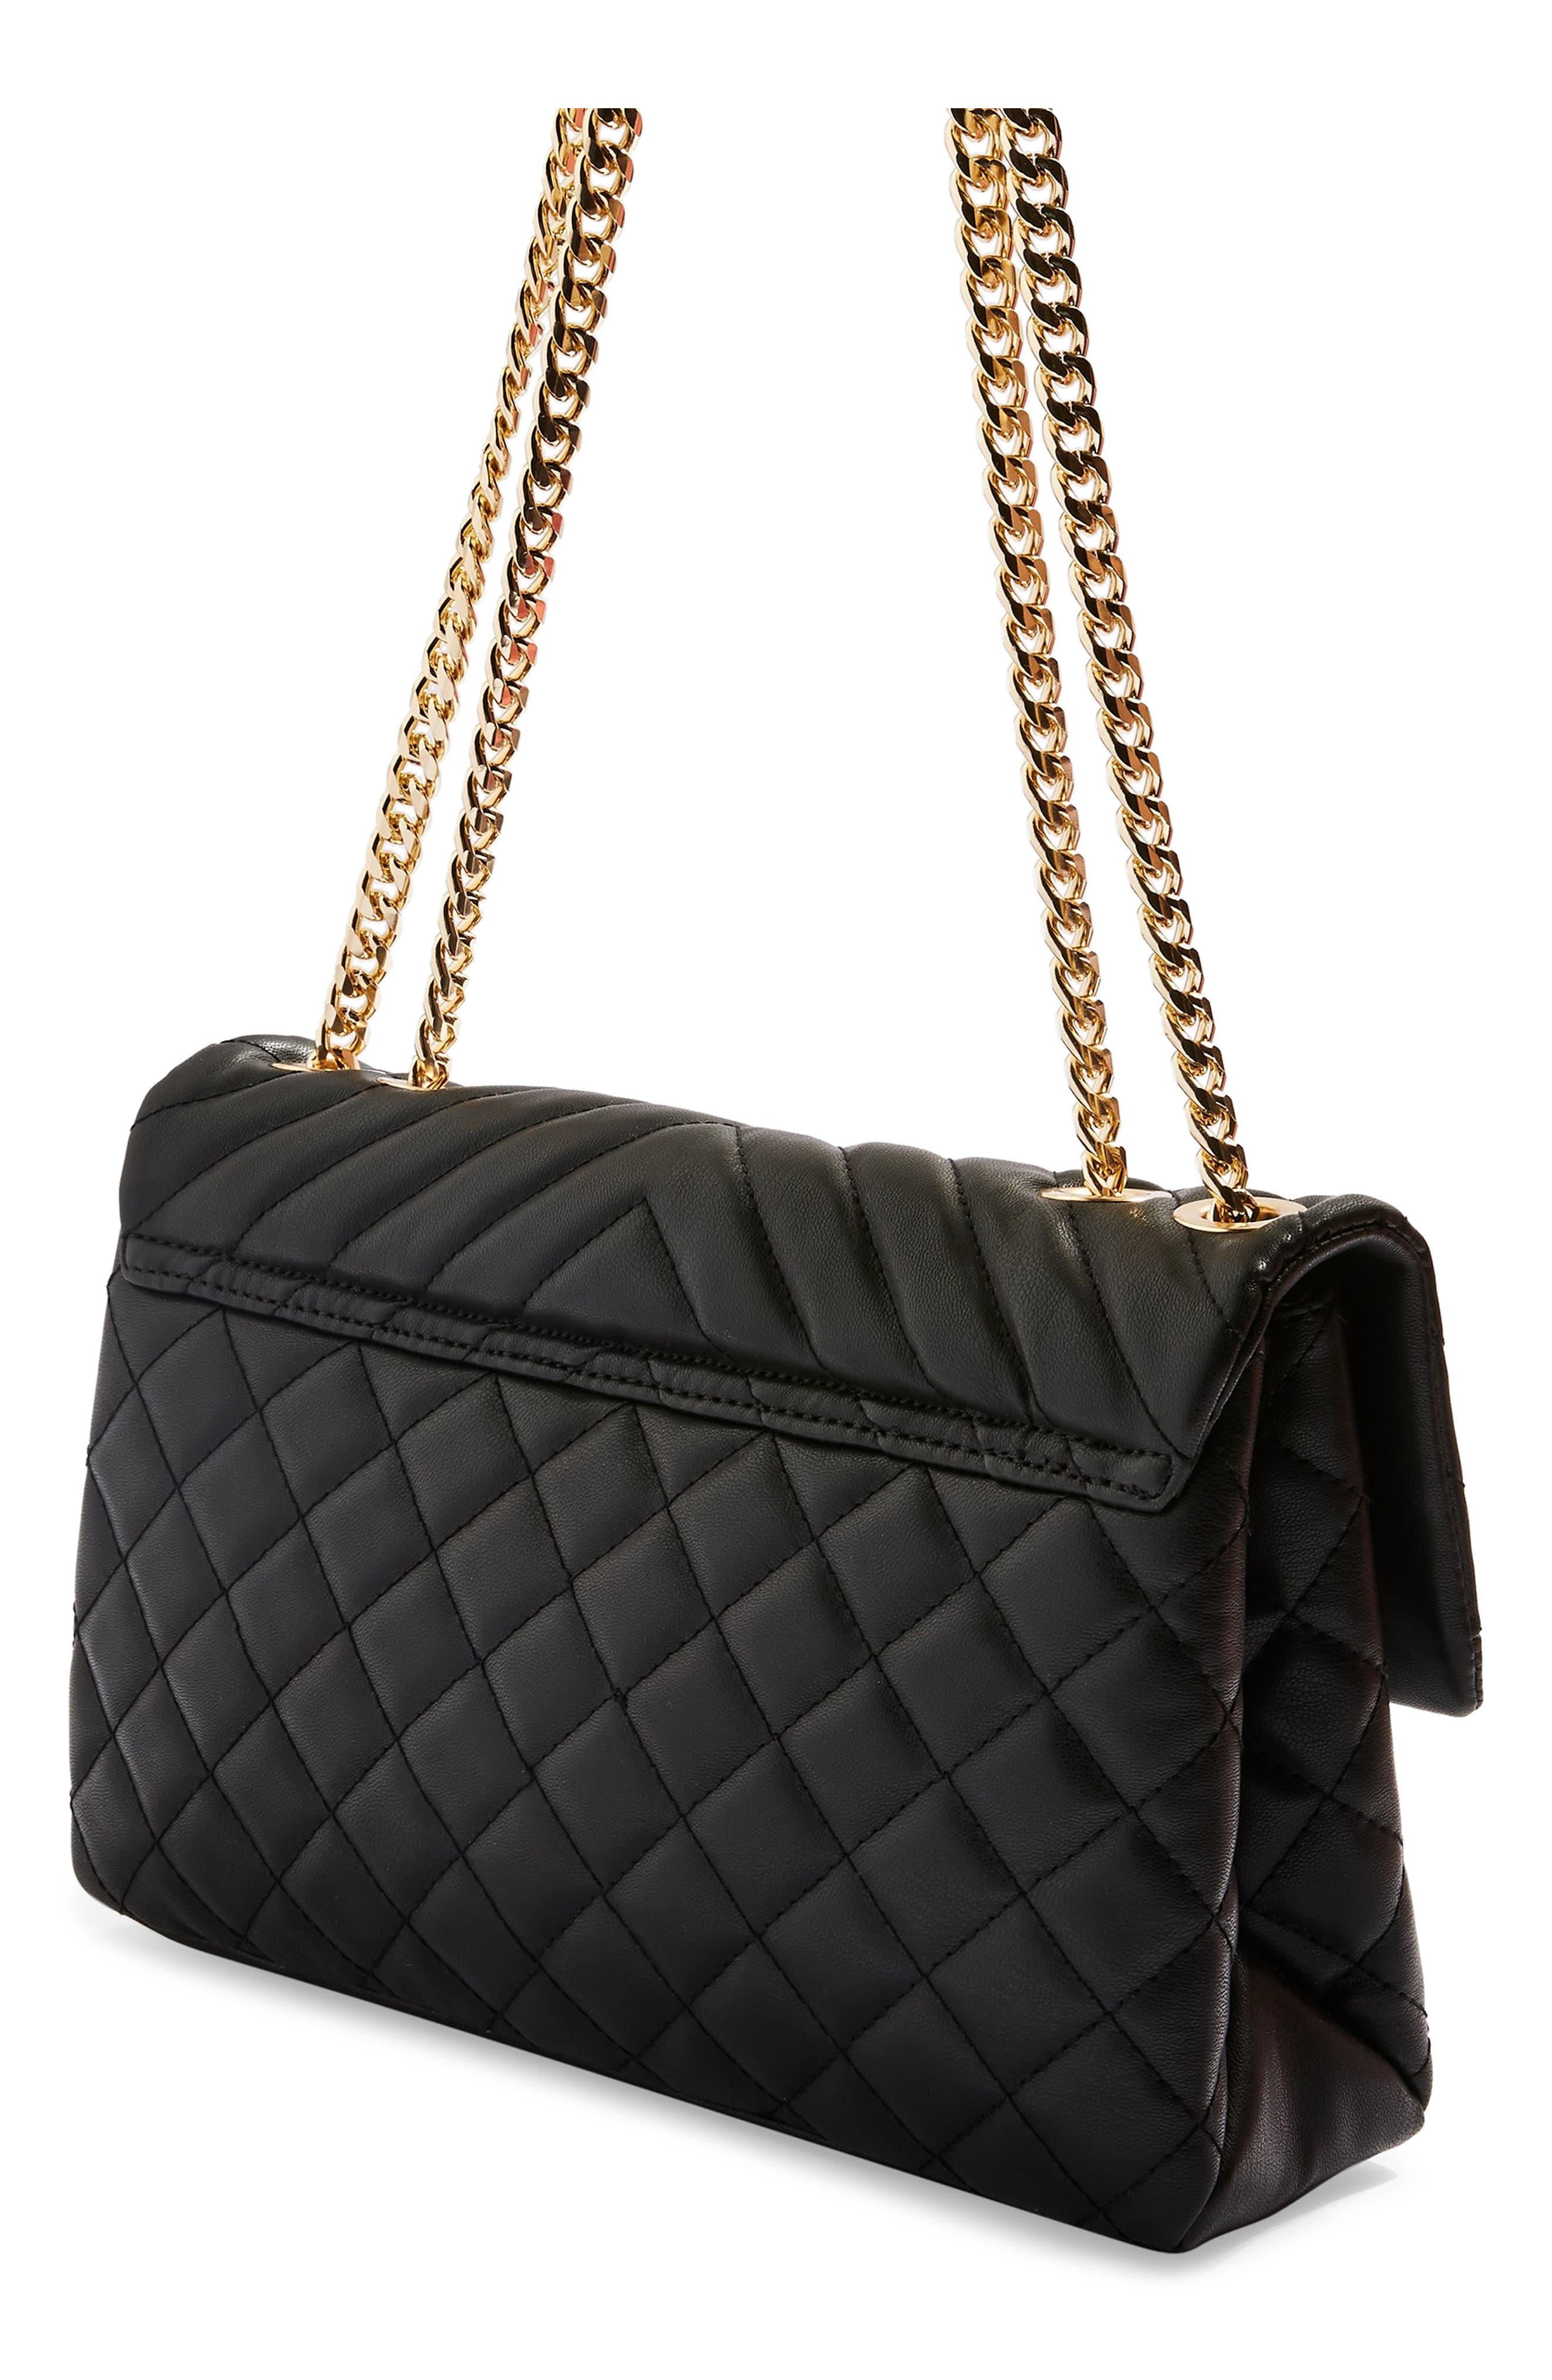 TOPSHOP, Panther Quilted Faux Leather Shoulder Bag, Alternate thumbnail 3, color, 001